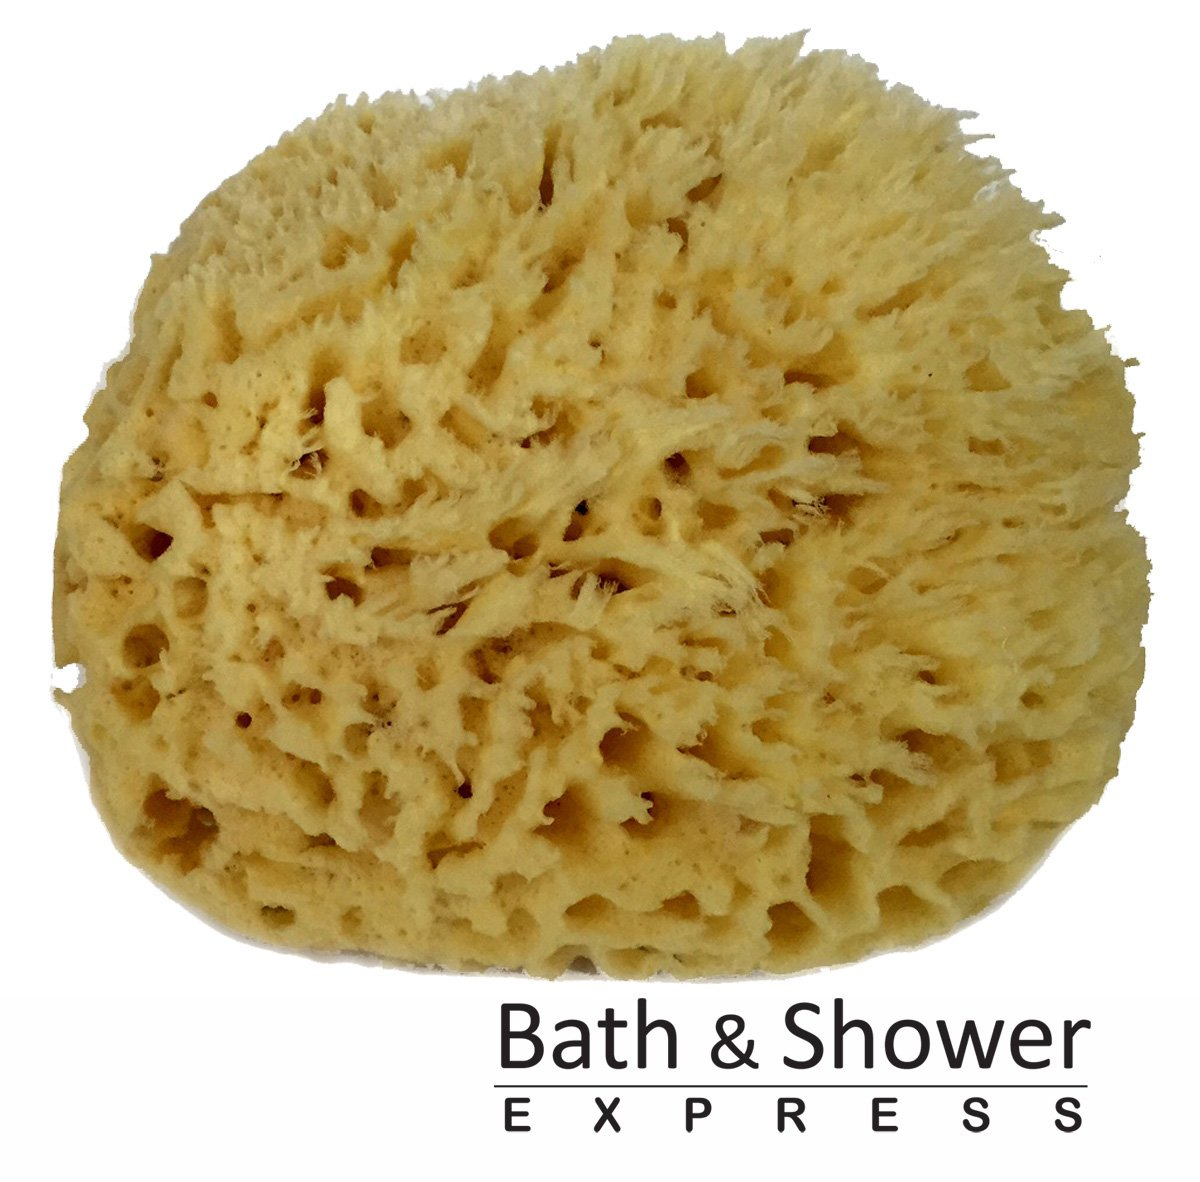 Sea Wool Sponge 6-7 (X-Large) by Bath & Shower Express ® Natural Renewable Resource!